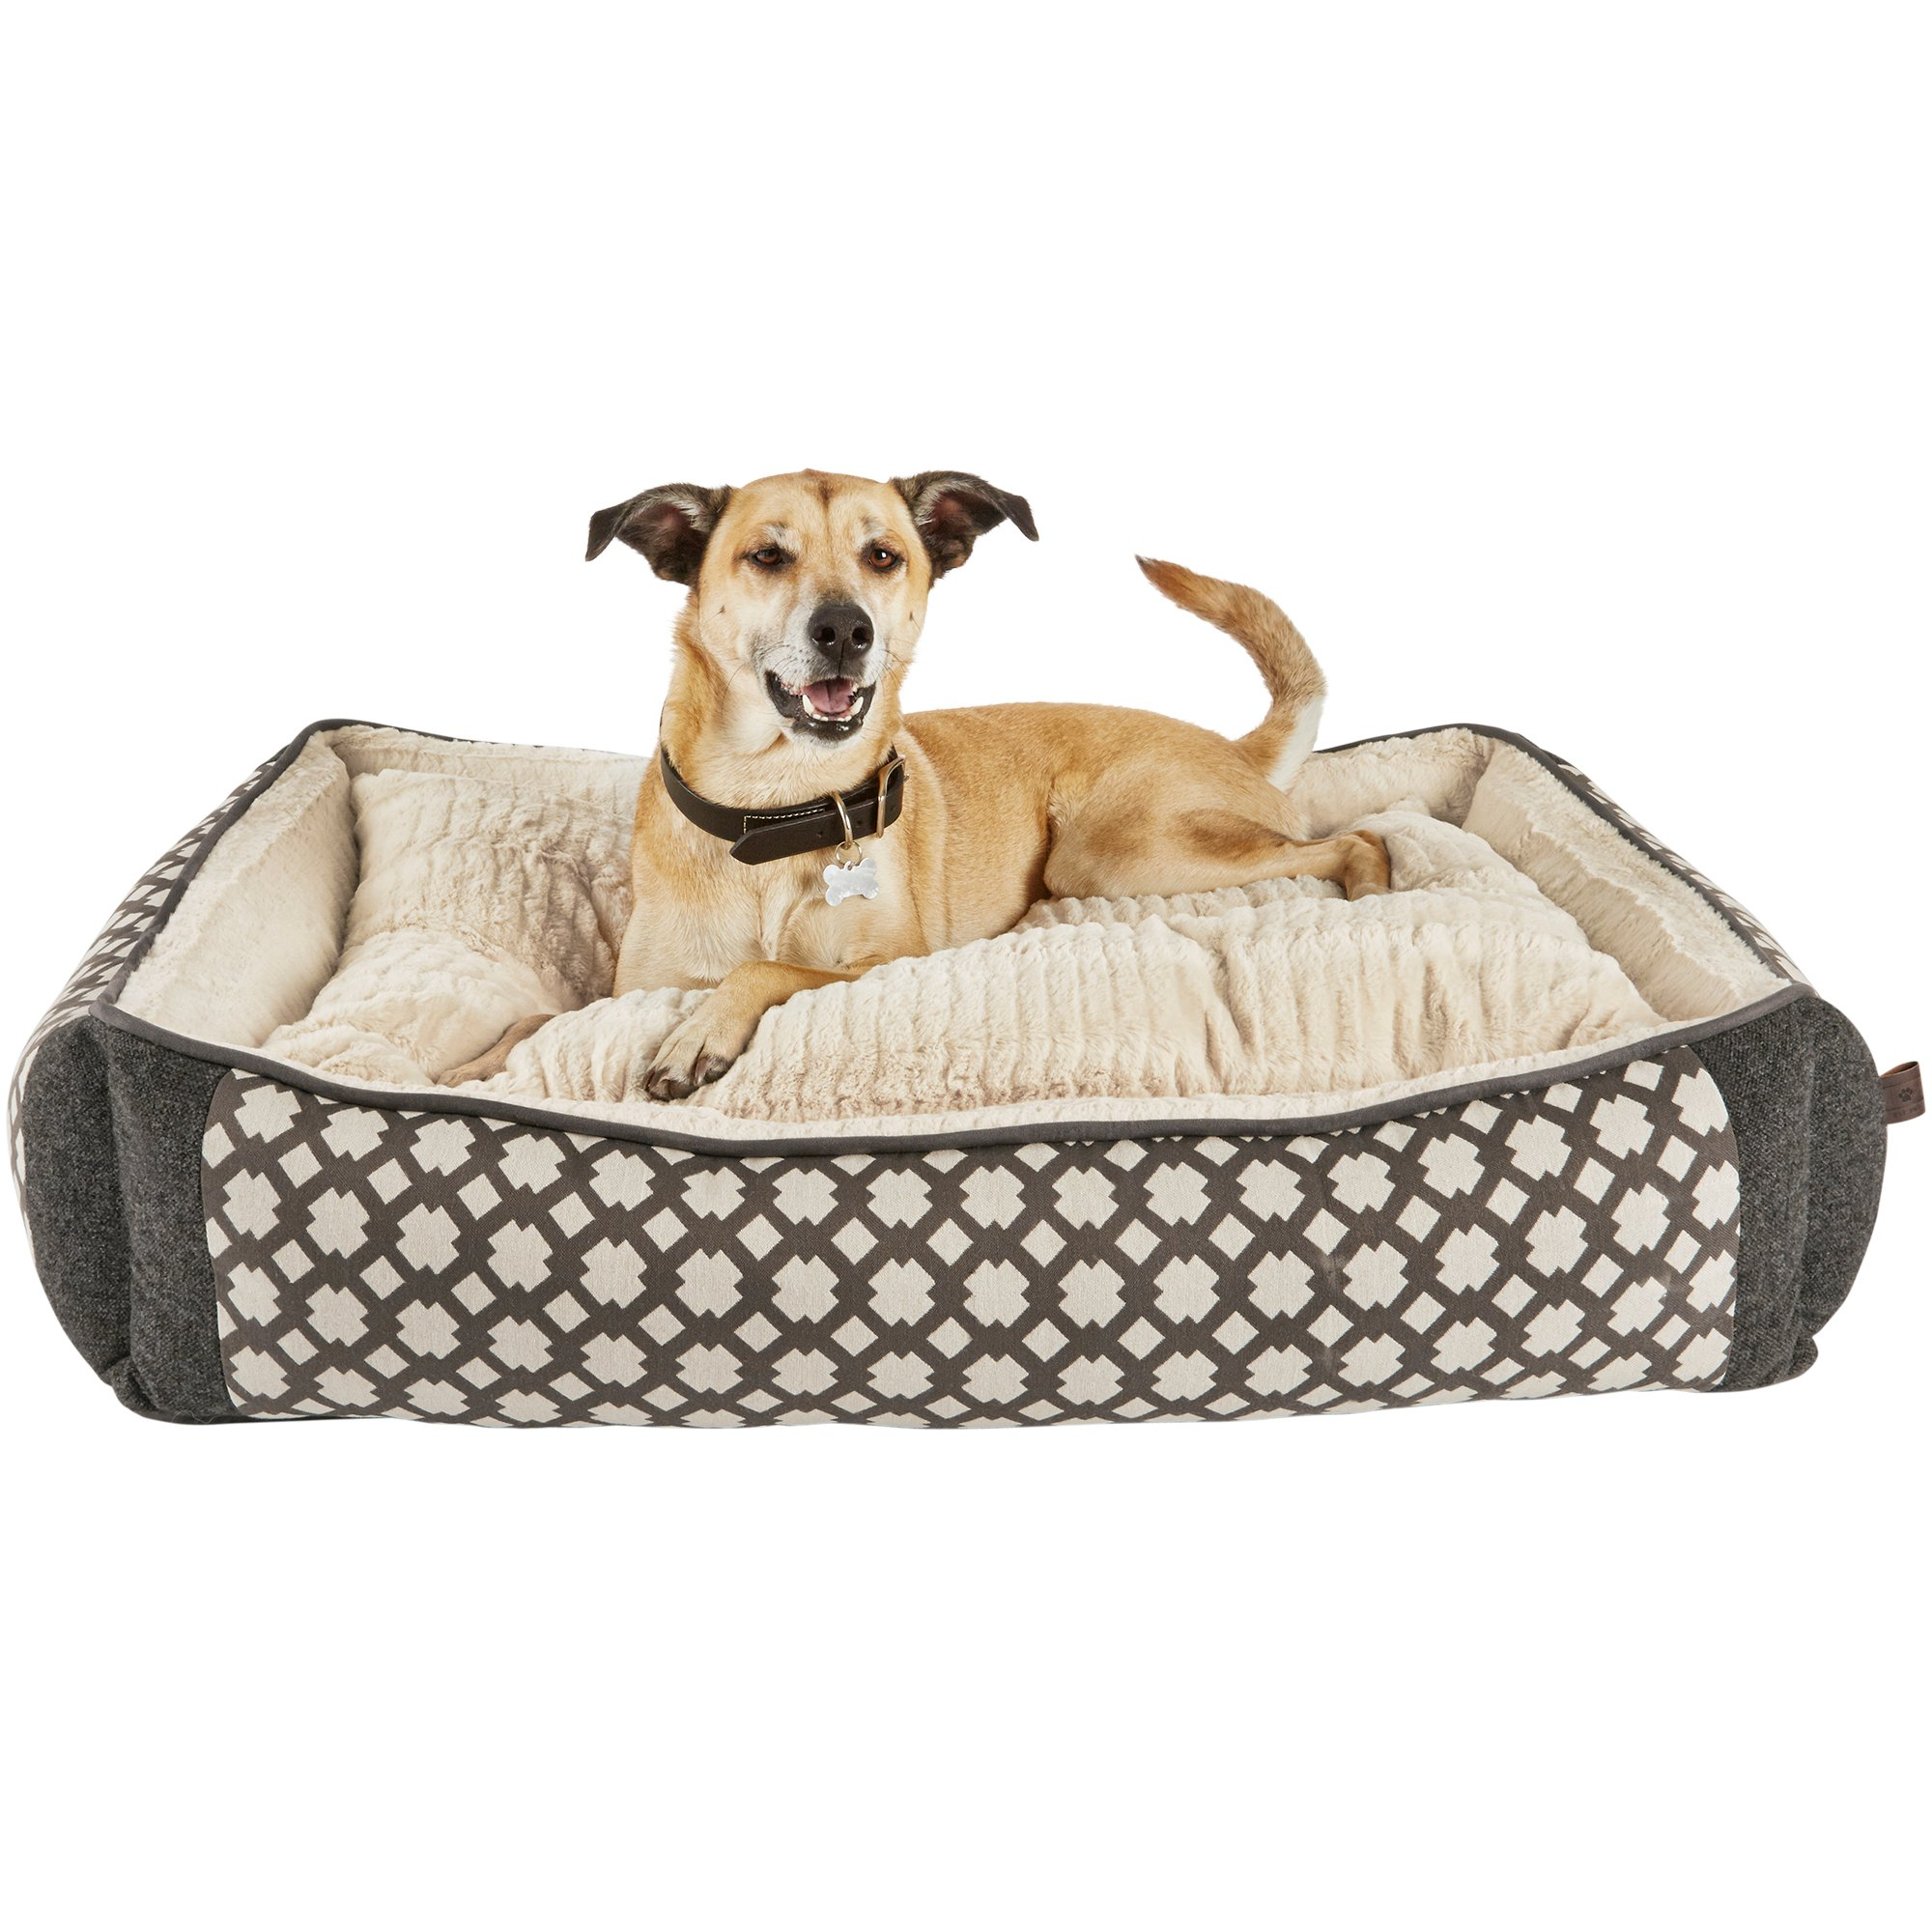 harmony grey nester orthopedic dog bed petco. Black Bedroom Furniture Sets. Home Design Ideas